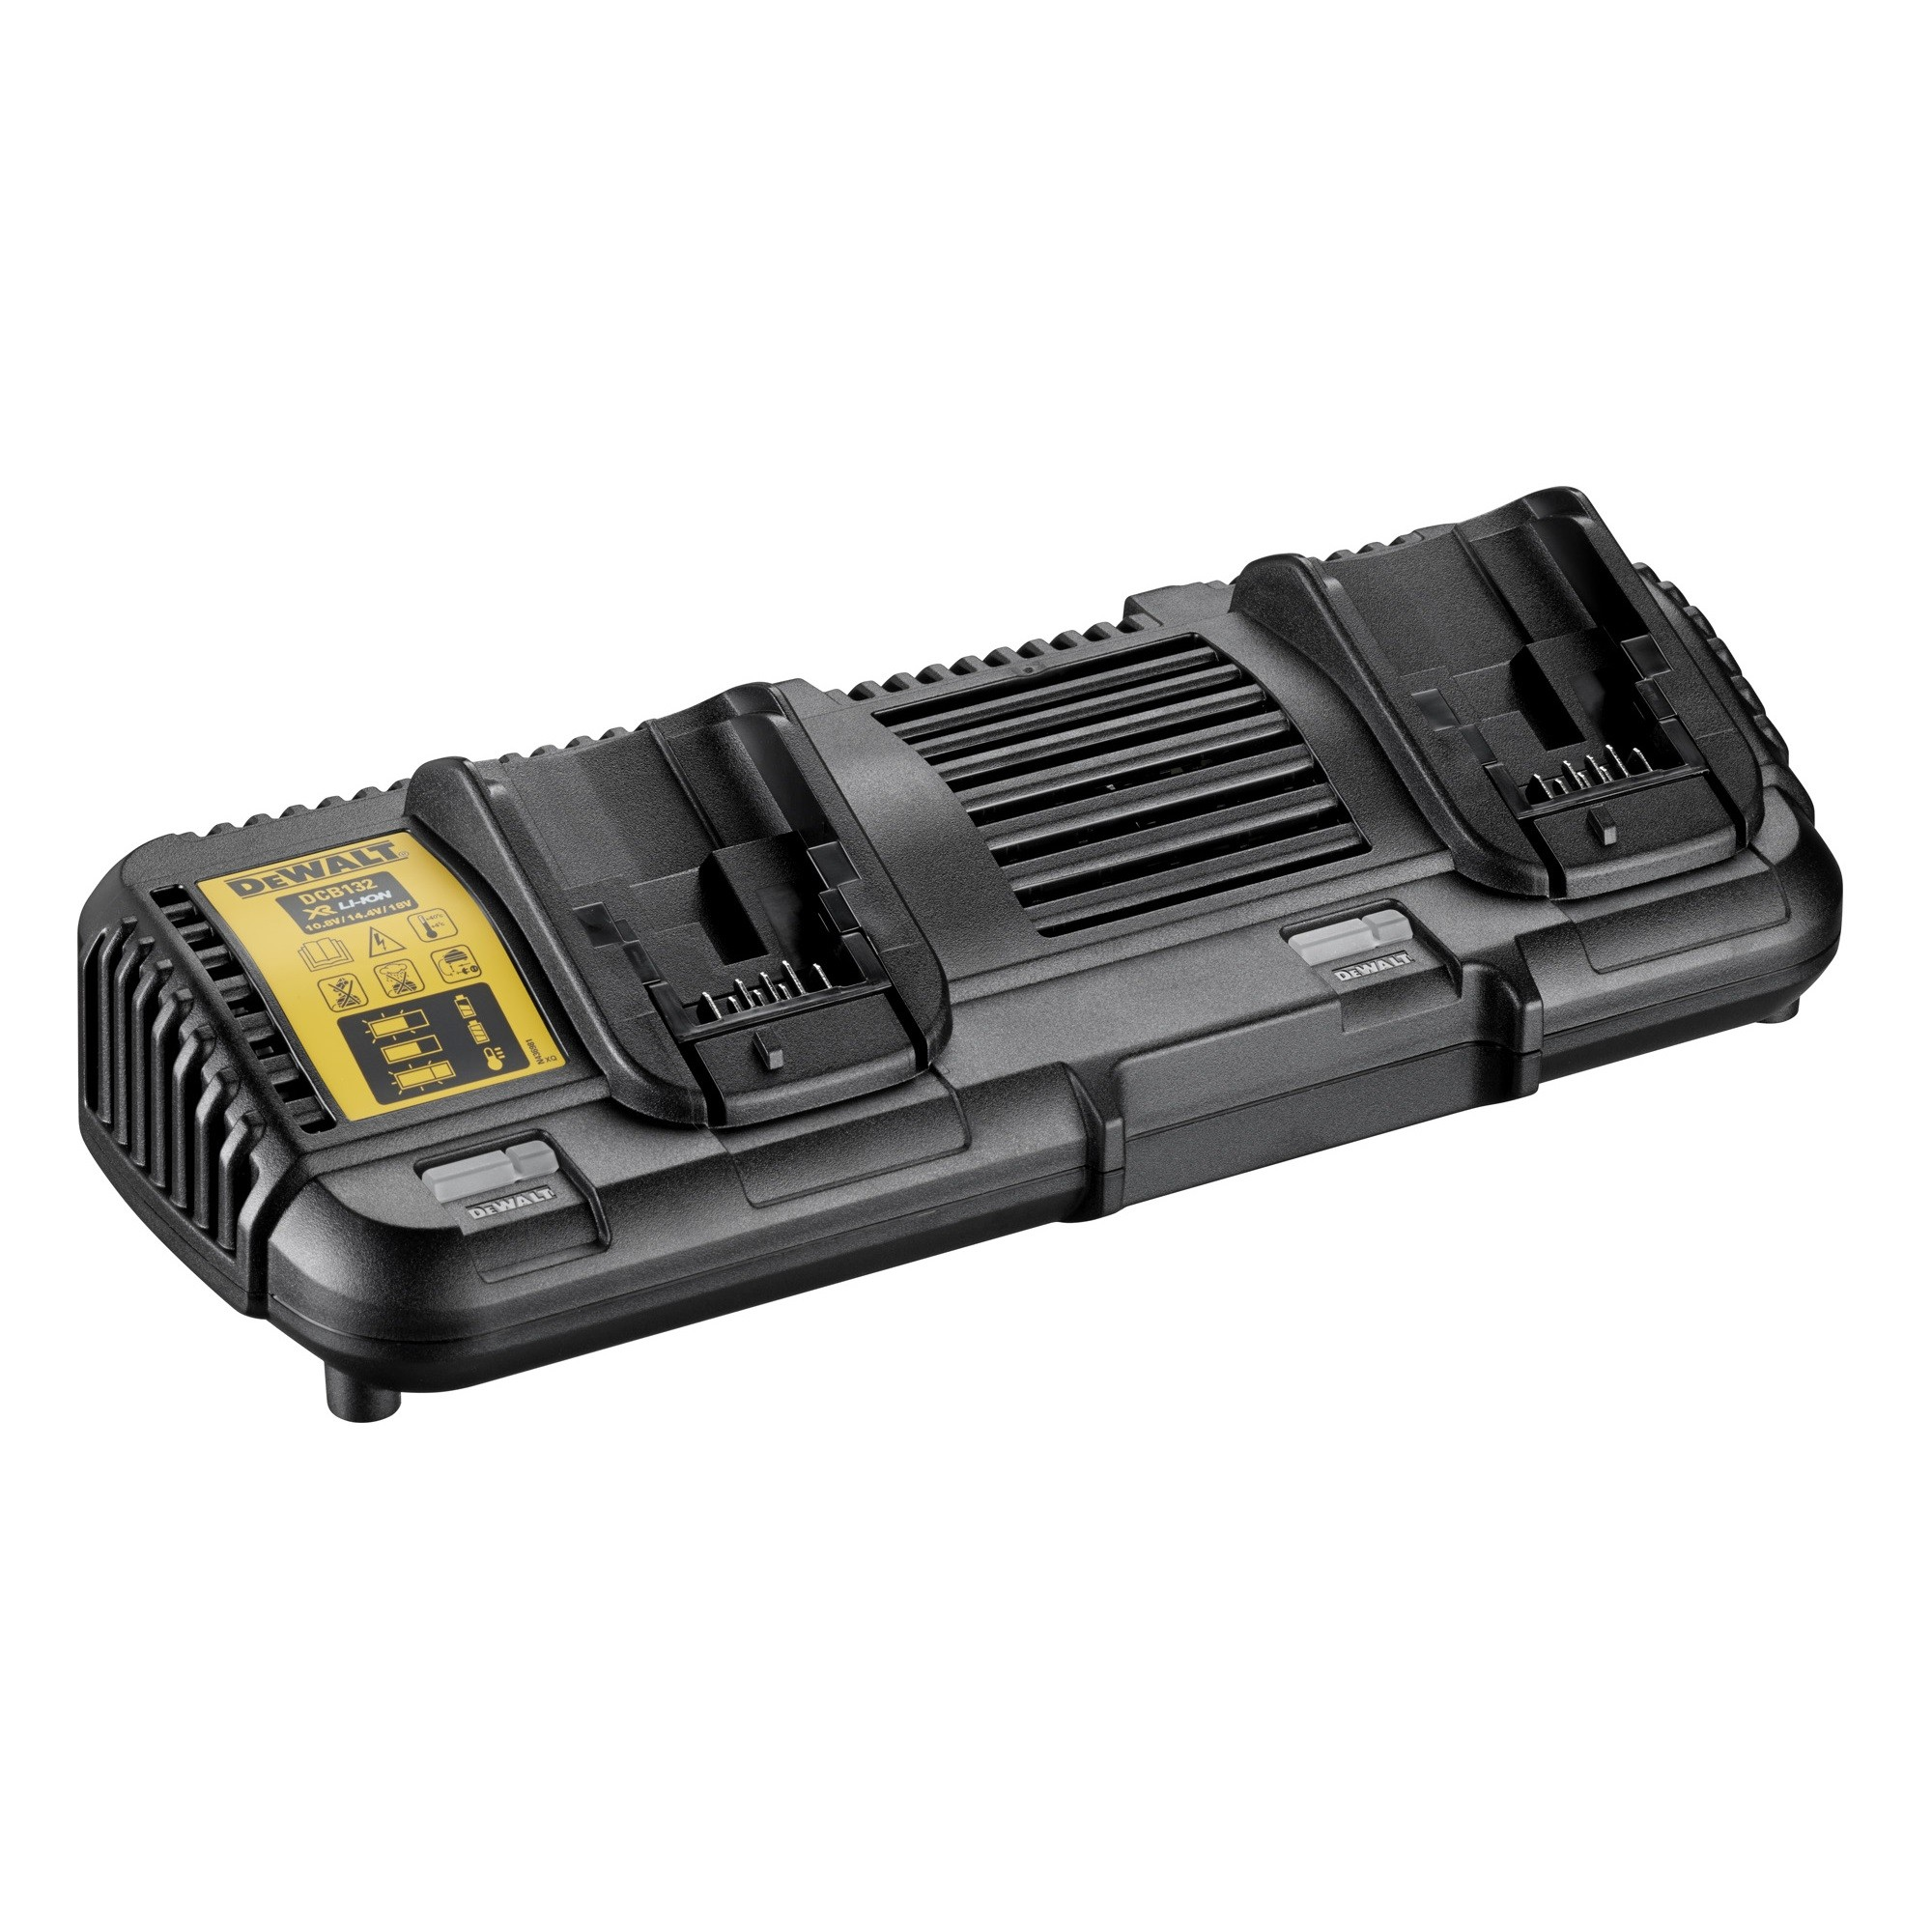 DeWalt DCB132 Dual Port Twin Battery Charger for 10.8v, 14.4v, 18v XR & 54v XR FLEXVOLT Li-Ion Batteries